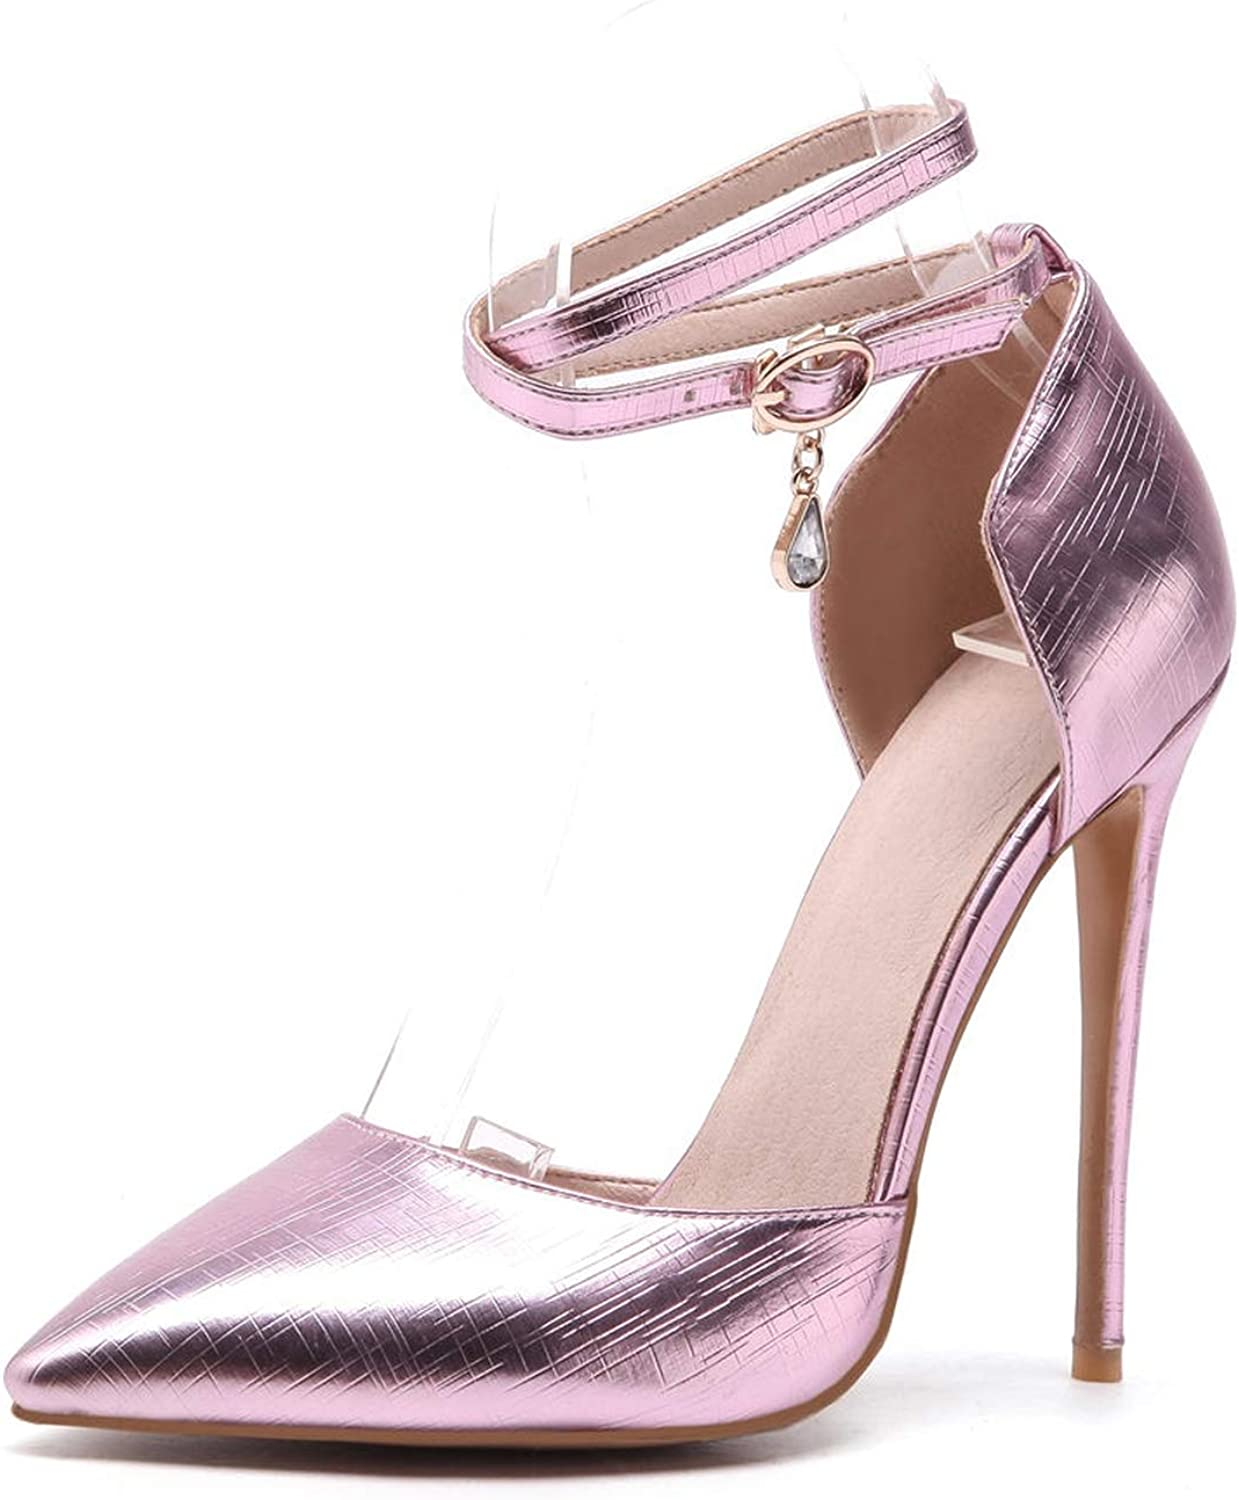 Surprise-Show Pumps Sexy Ankle Straps 12 cm Thin High Heels Sandals gold Silver Office Wedding shoes